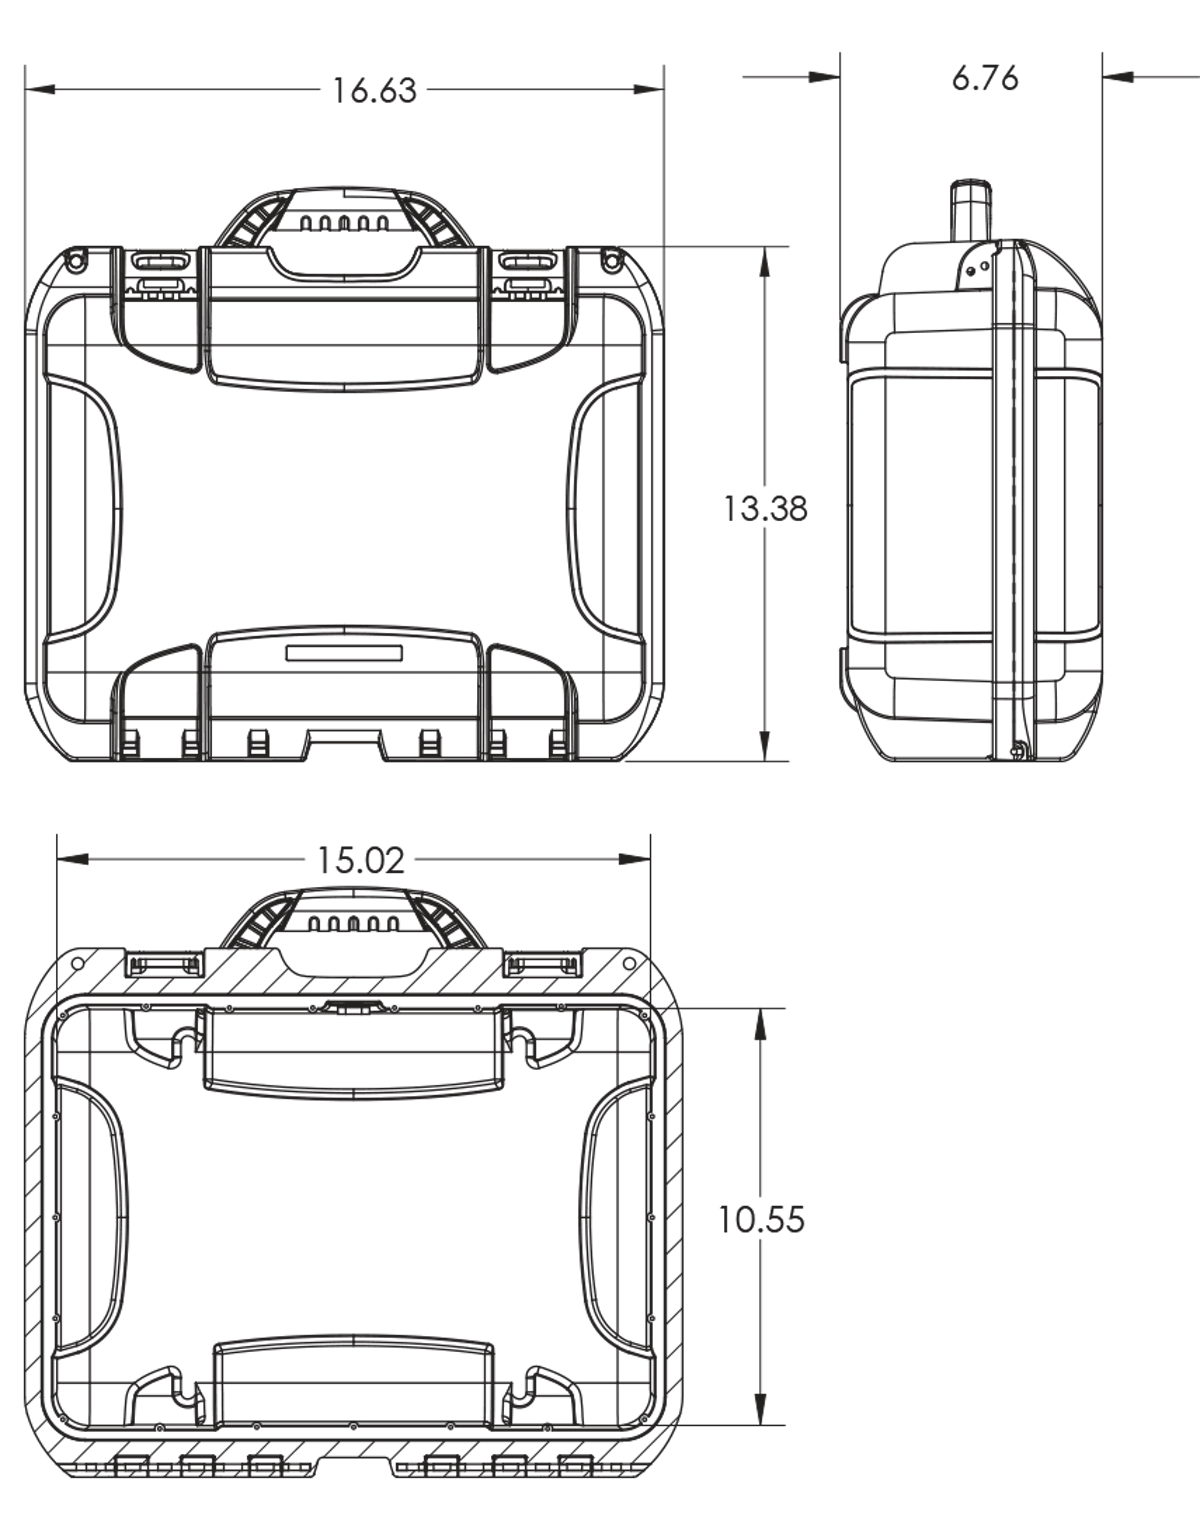 Dimensions of the Nanuk 920 Hard Case